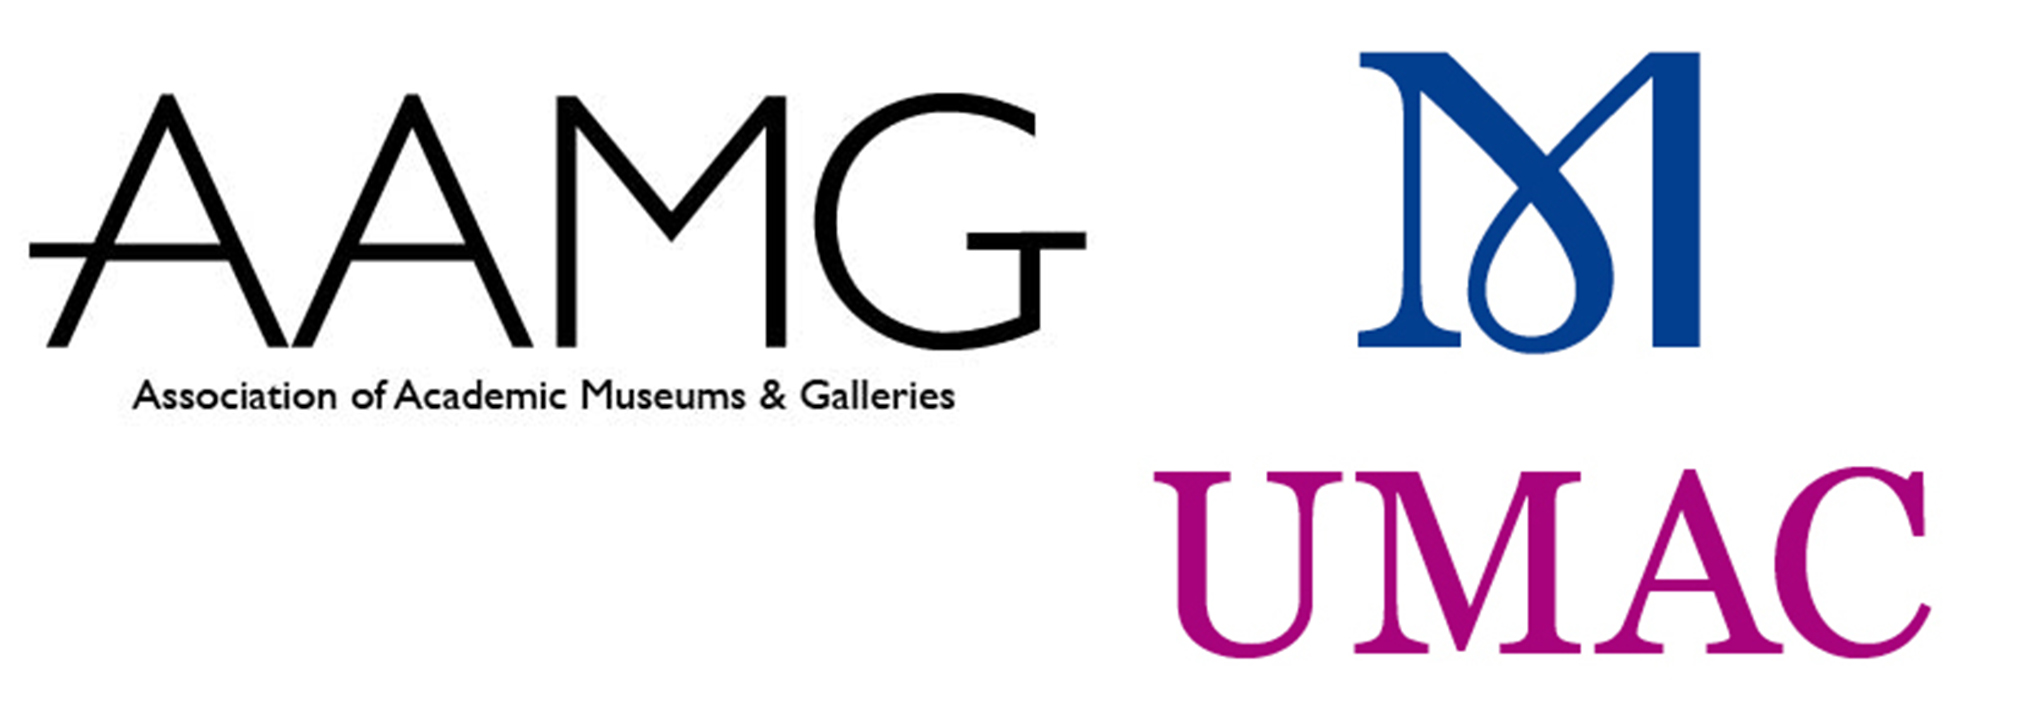 2018 Annual Conference | Association of Academic Museums and Galleries